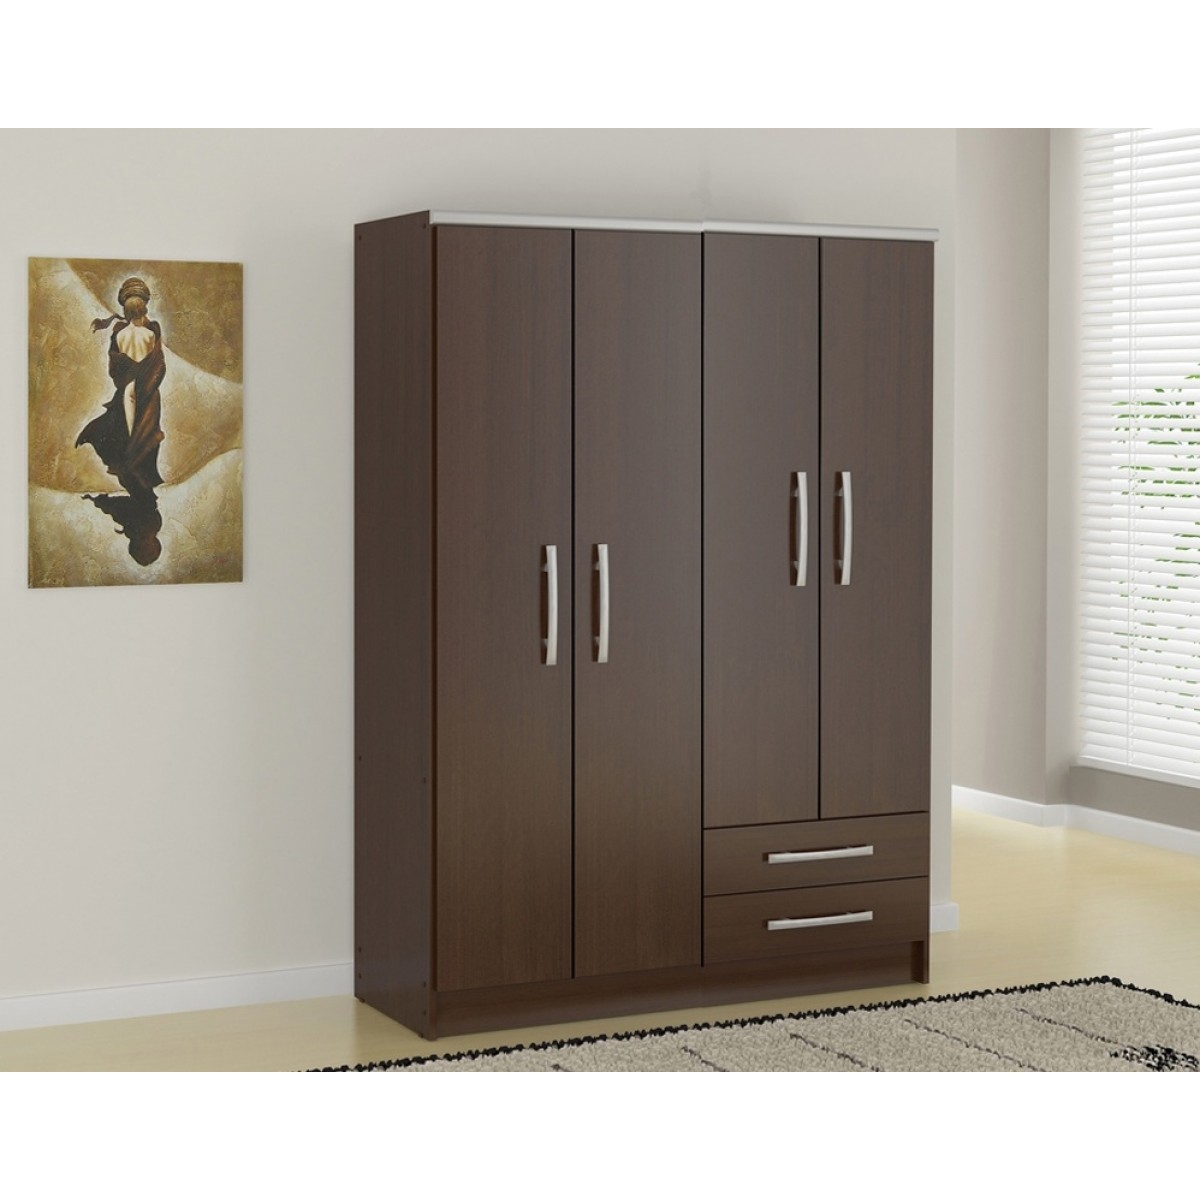 Armoire Dressing Chambre Adulte penderie p-244